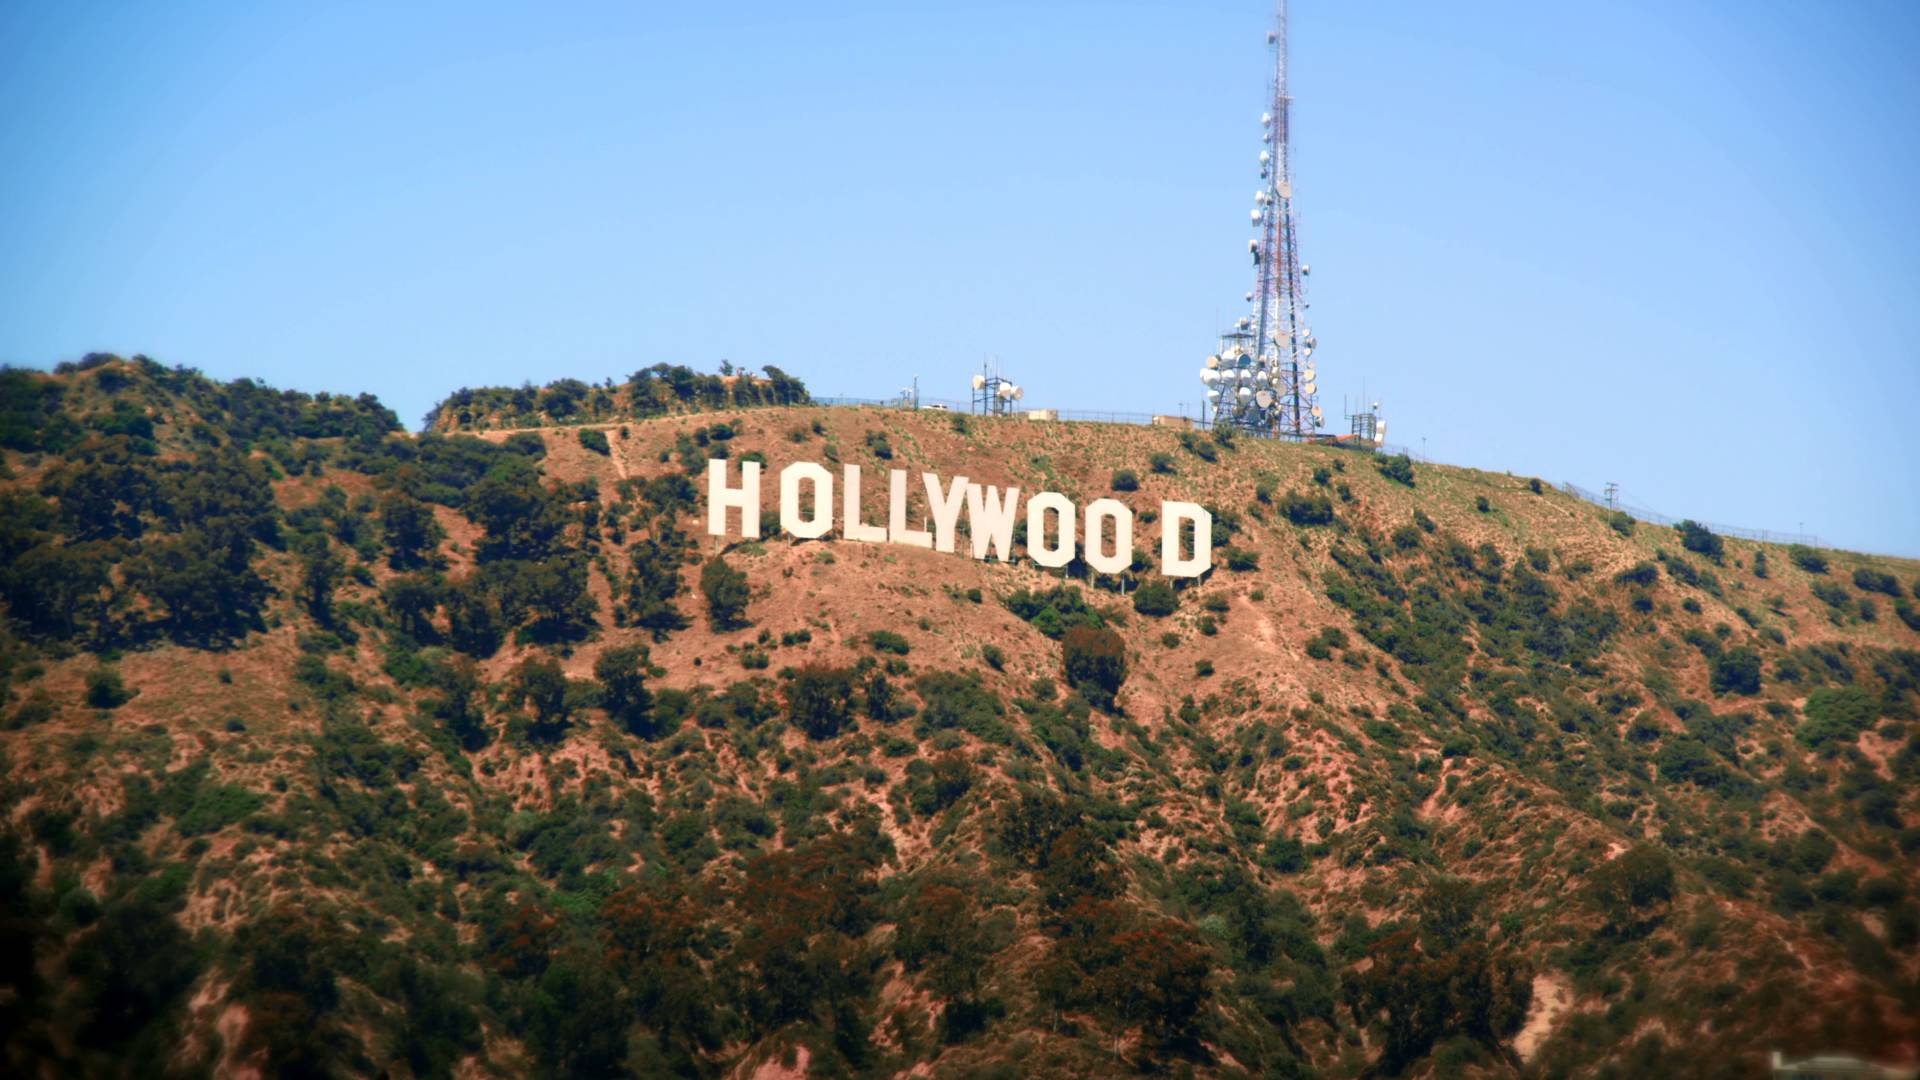 Hollywood Sign Backgrounds